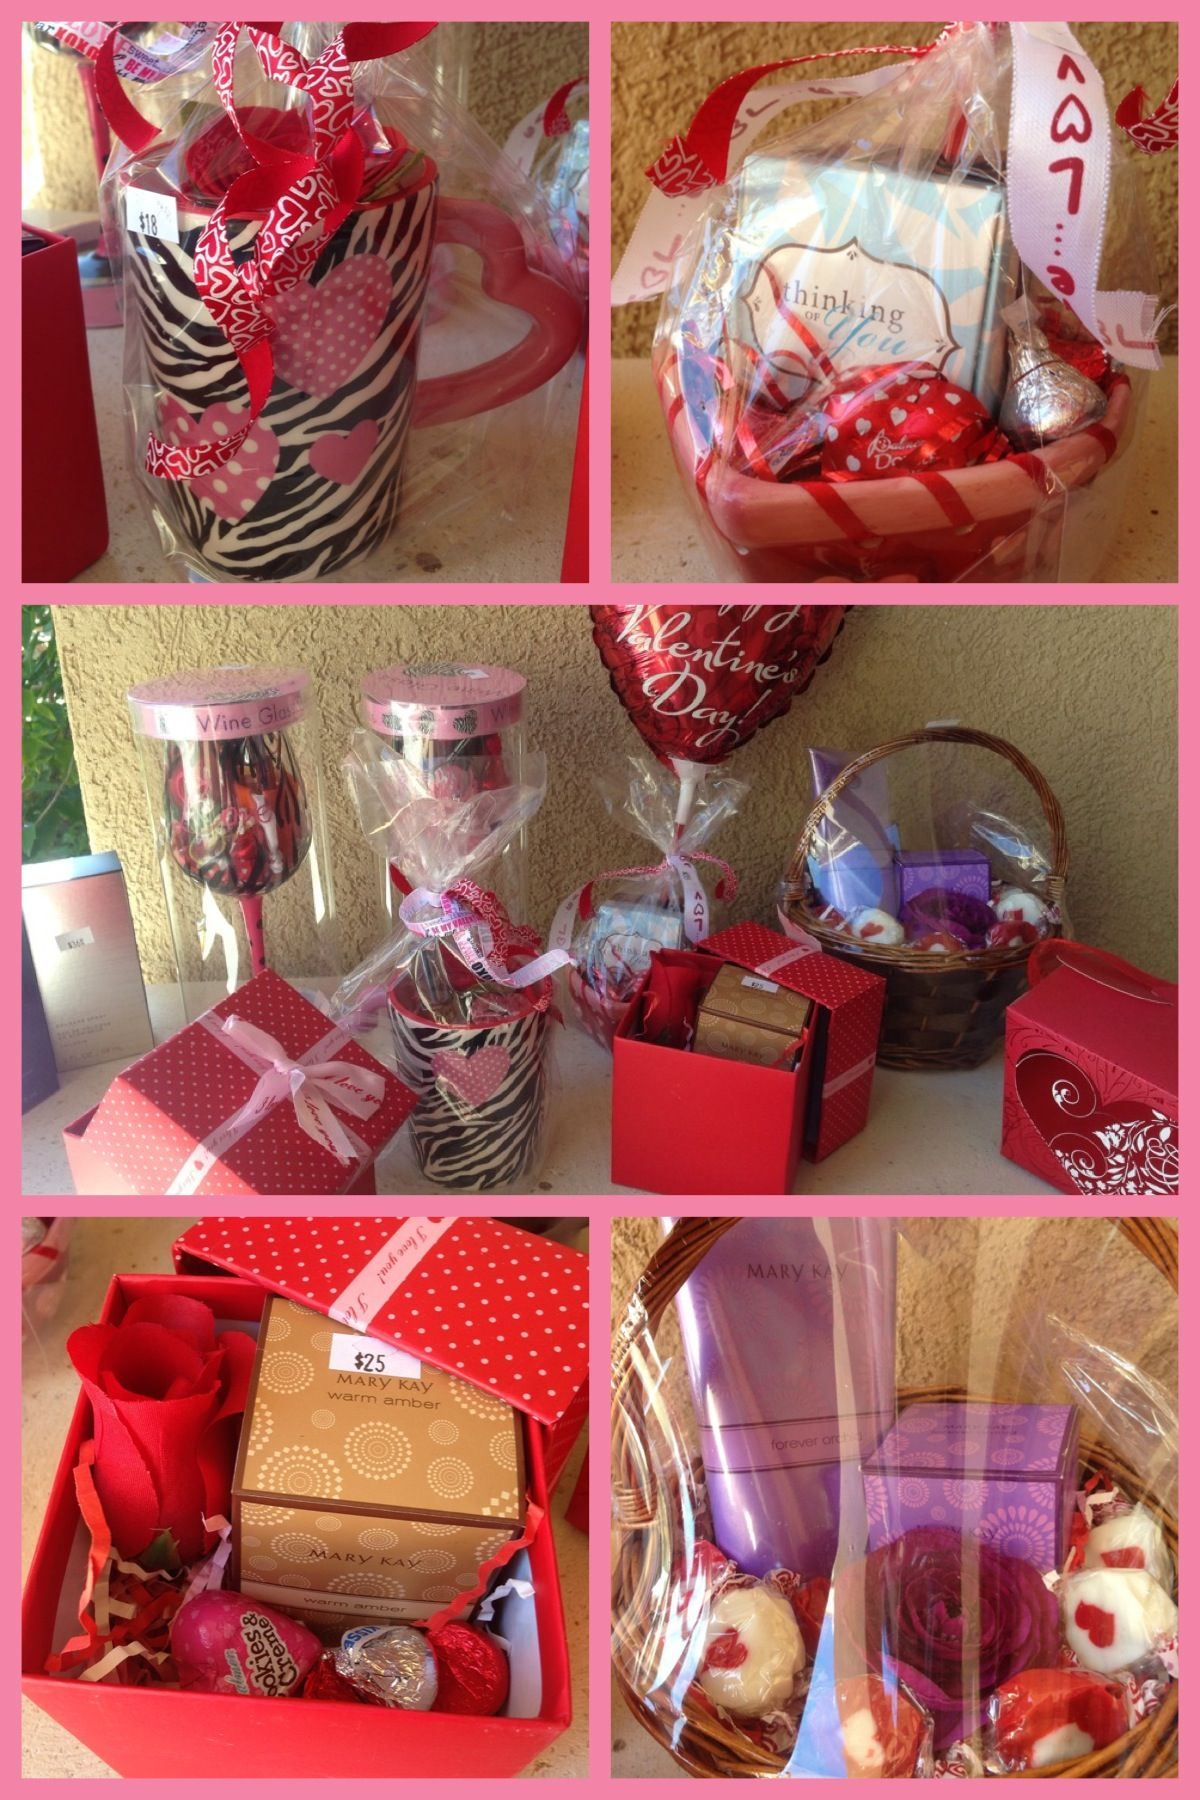 Mary Kay Valentine's Day Baskets •Starting as low as 10